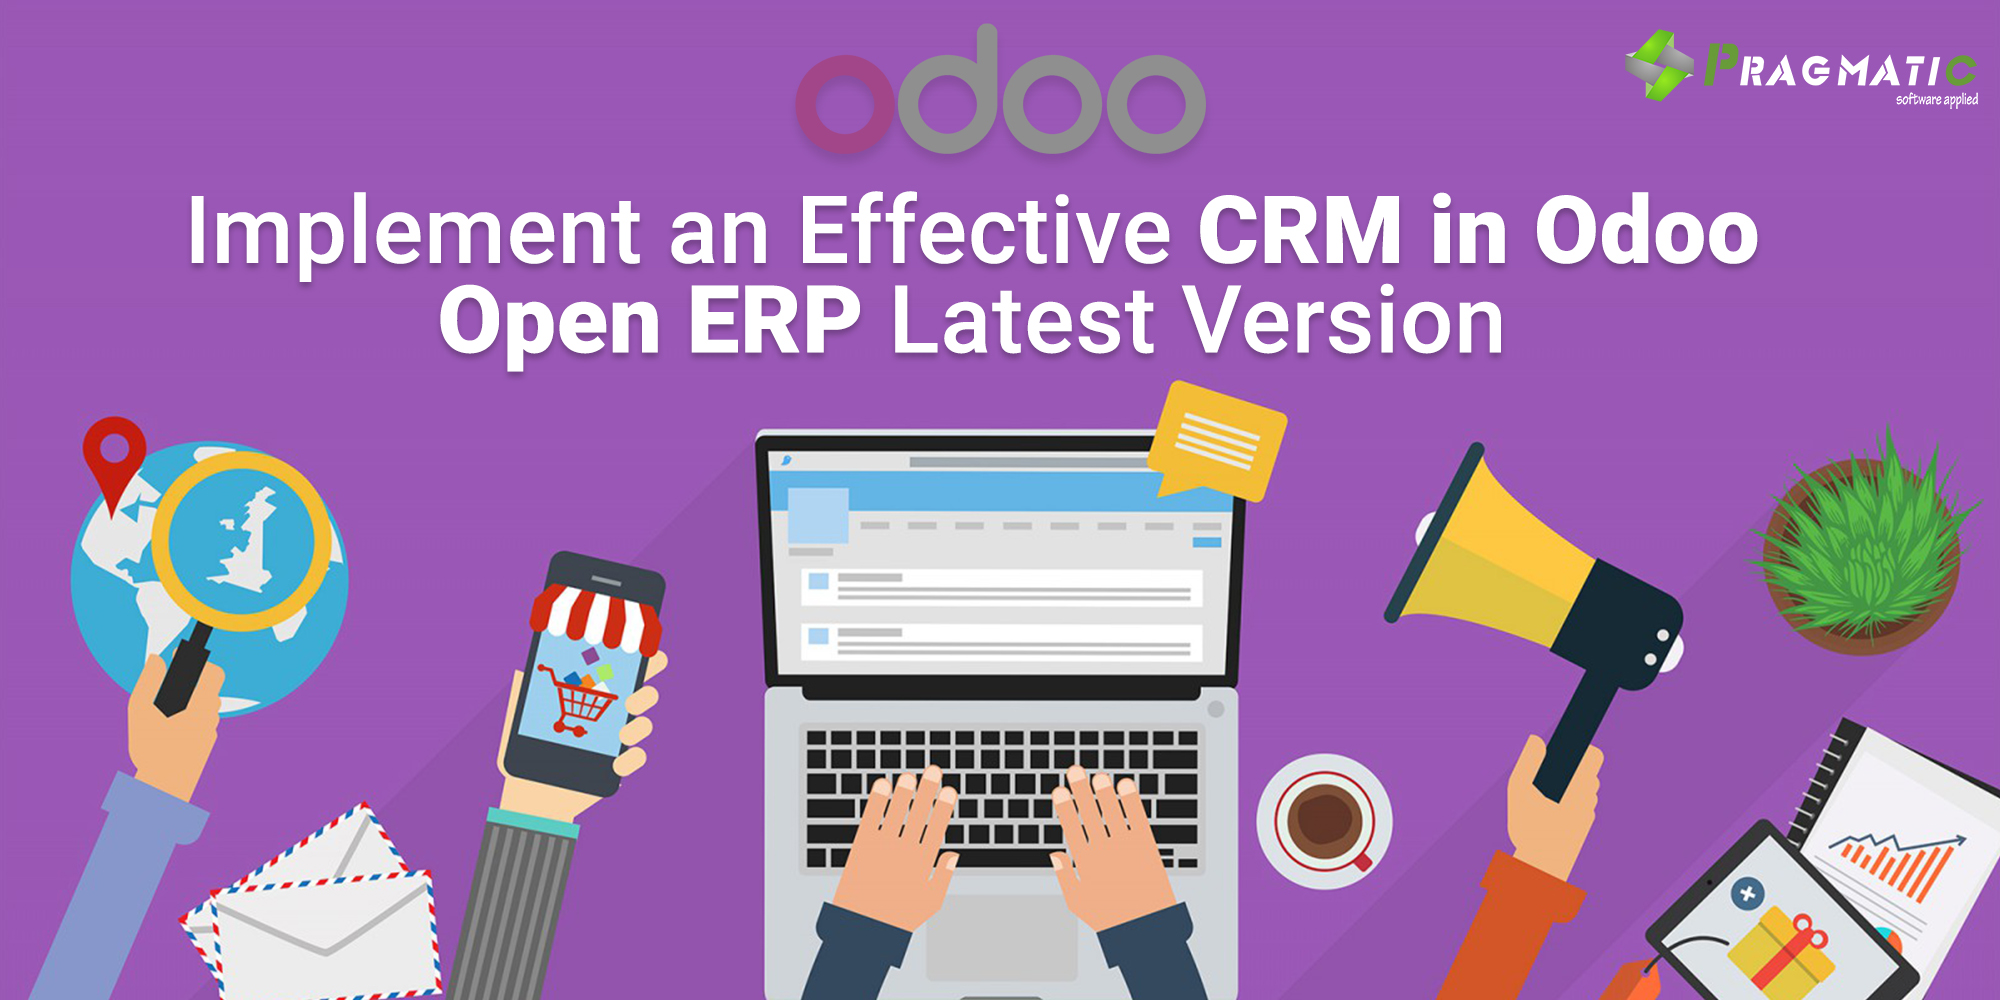 Implement an Effective CRM in Odoo Open ERP Latest Version